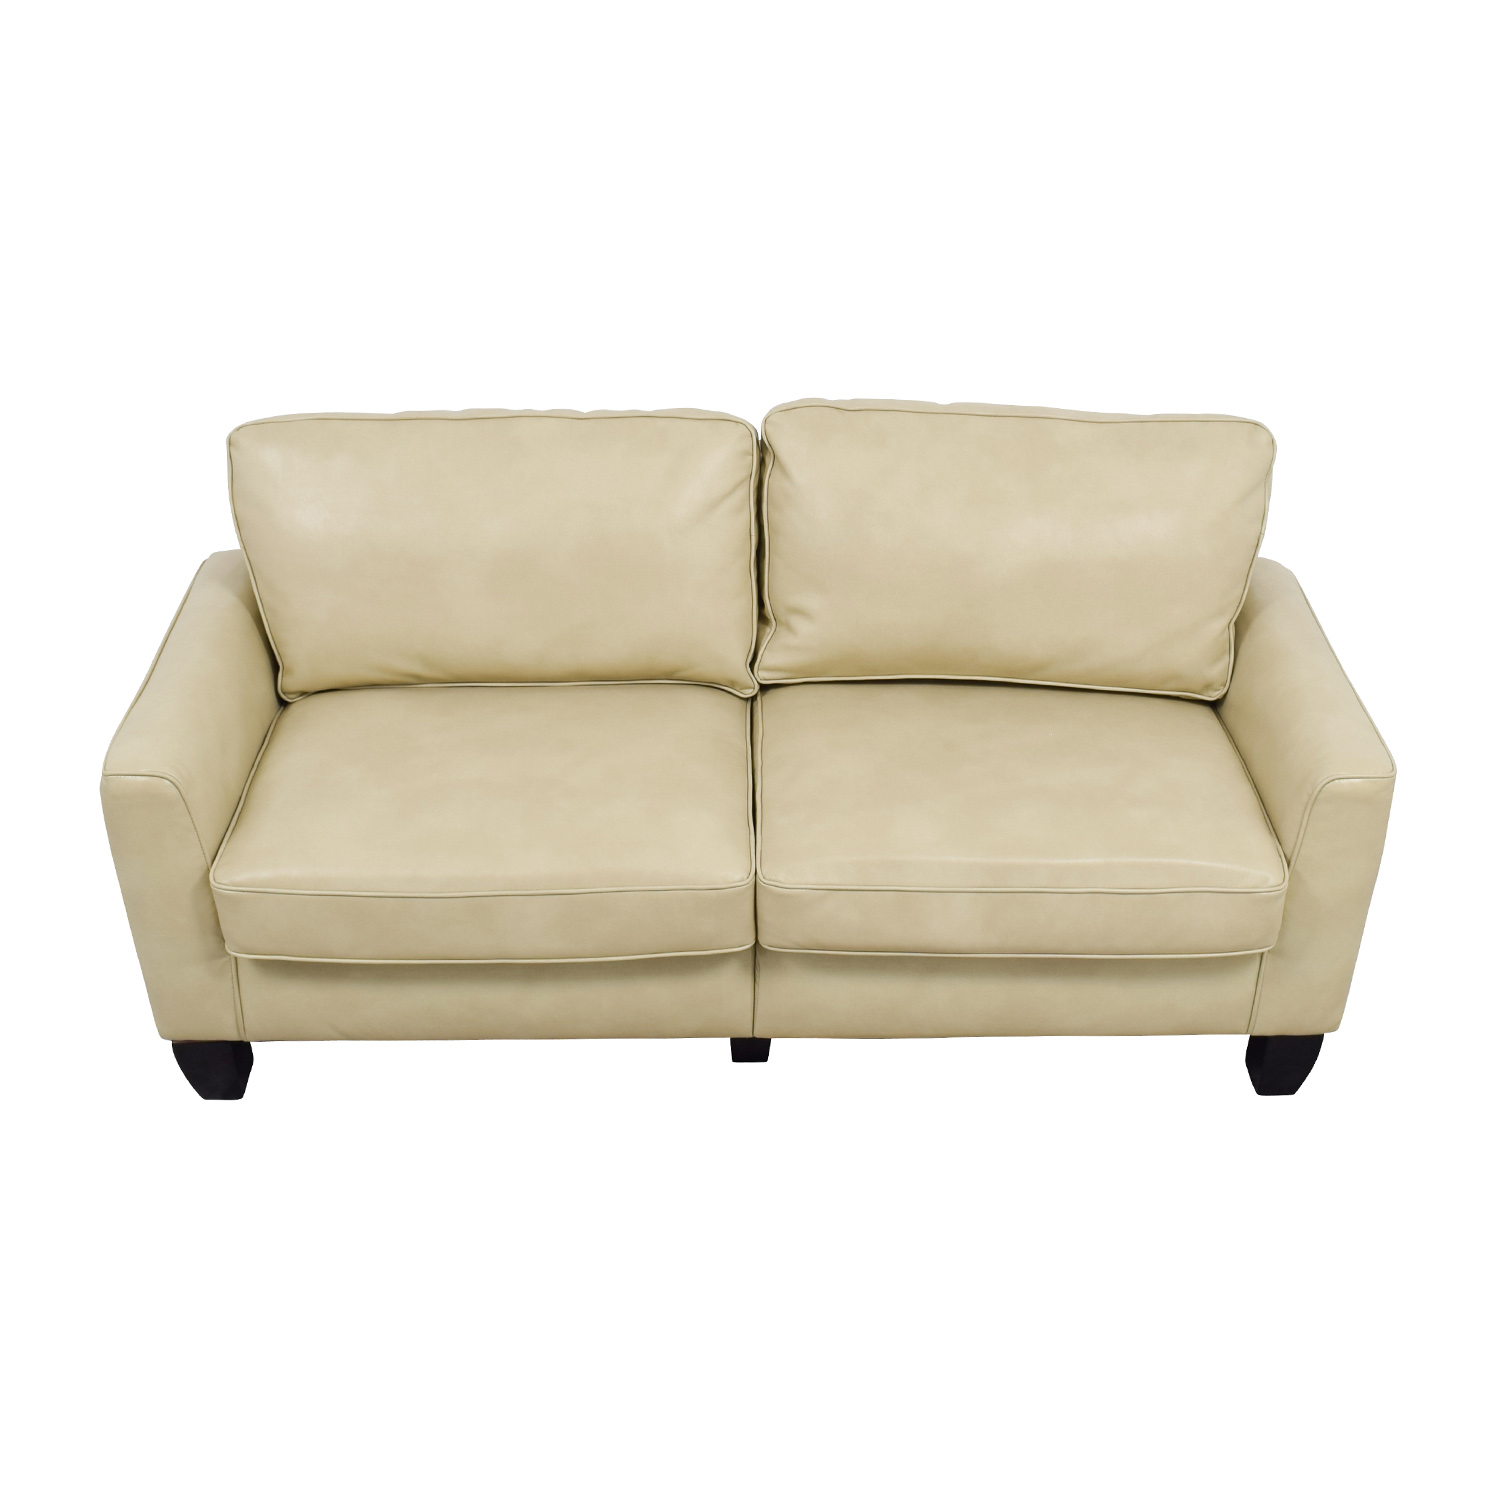 Serta Serta Astoria Coated Fabric Sofa in Cannoli Cream on sale